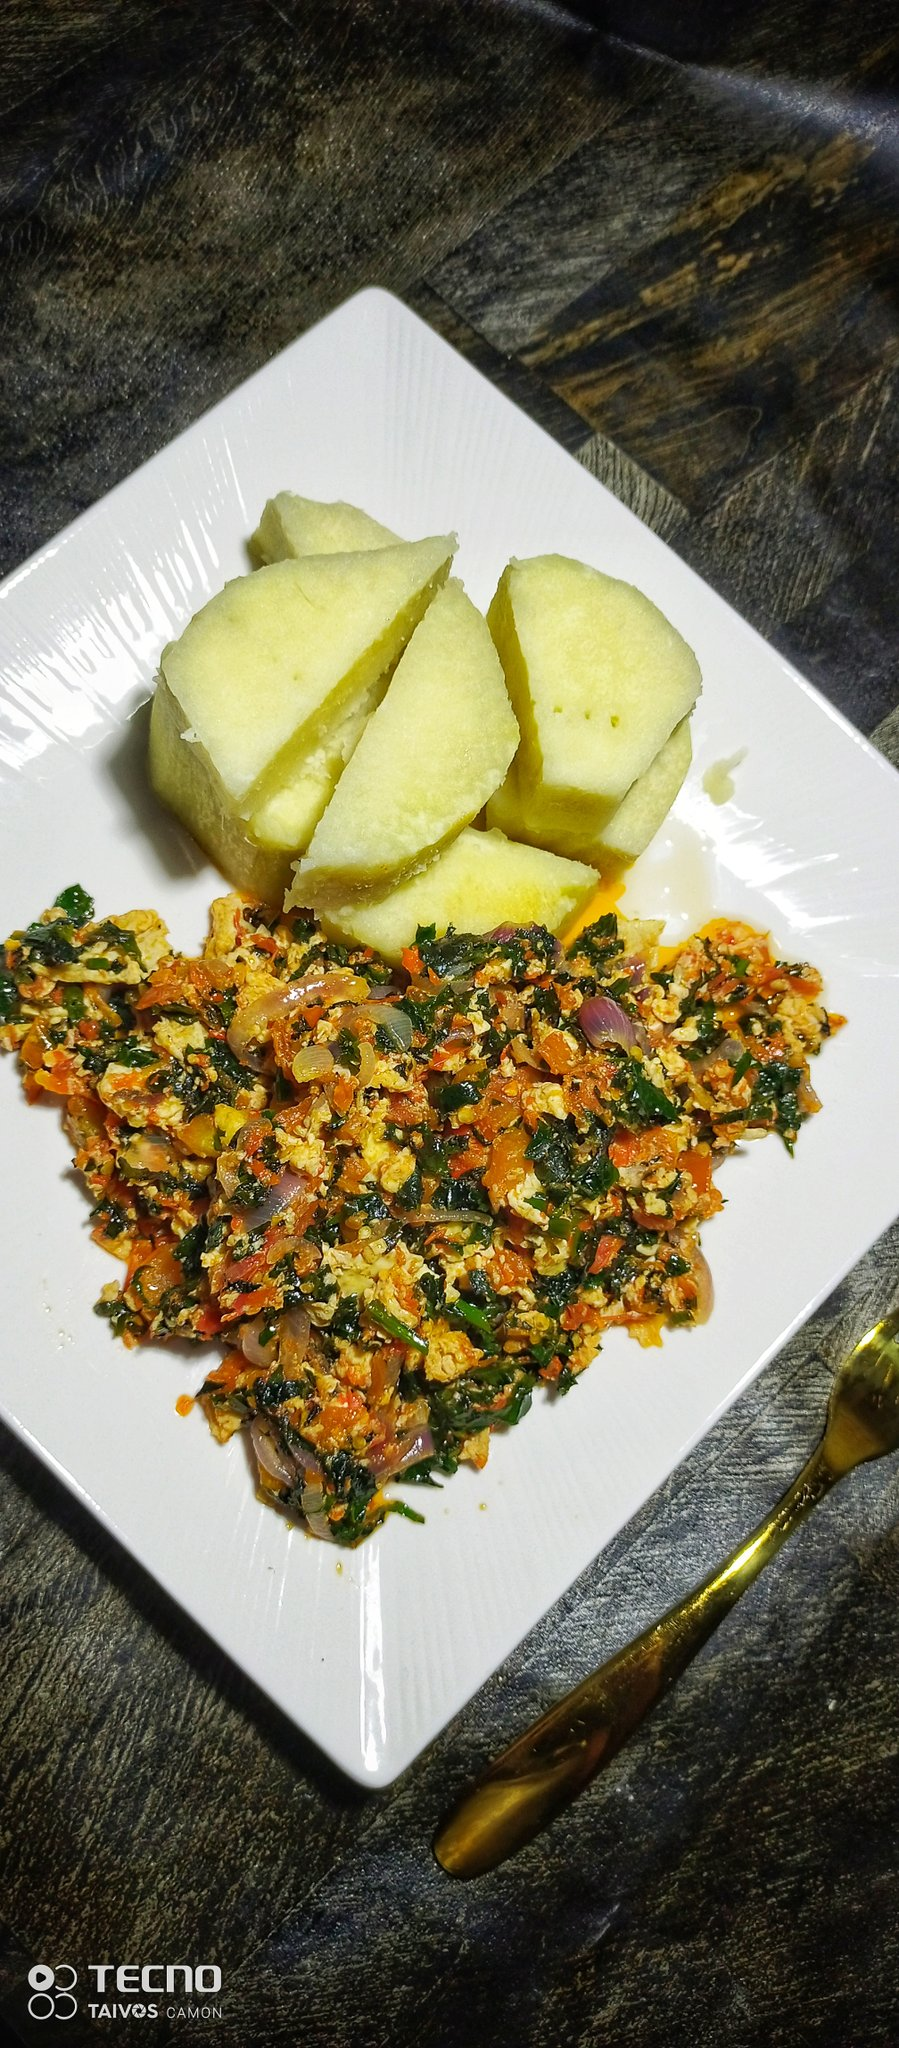 List of Nigerian carbohydrate foods